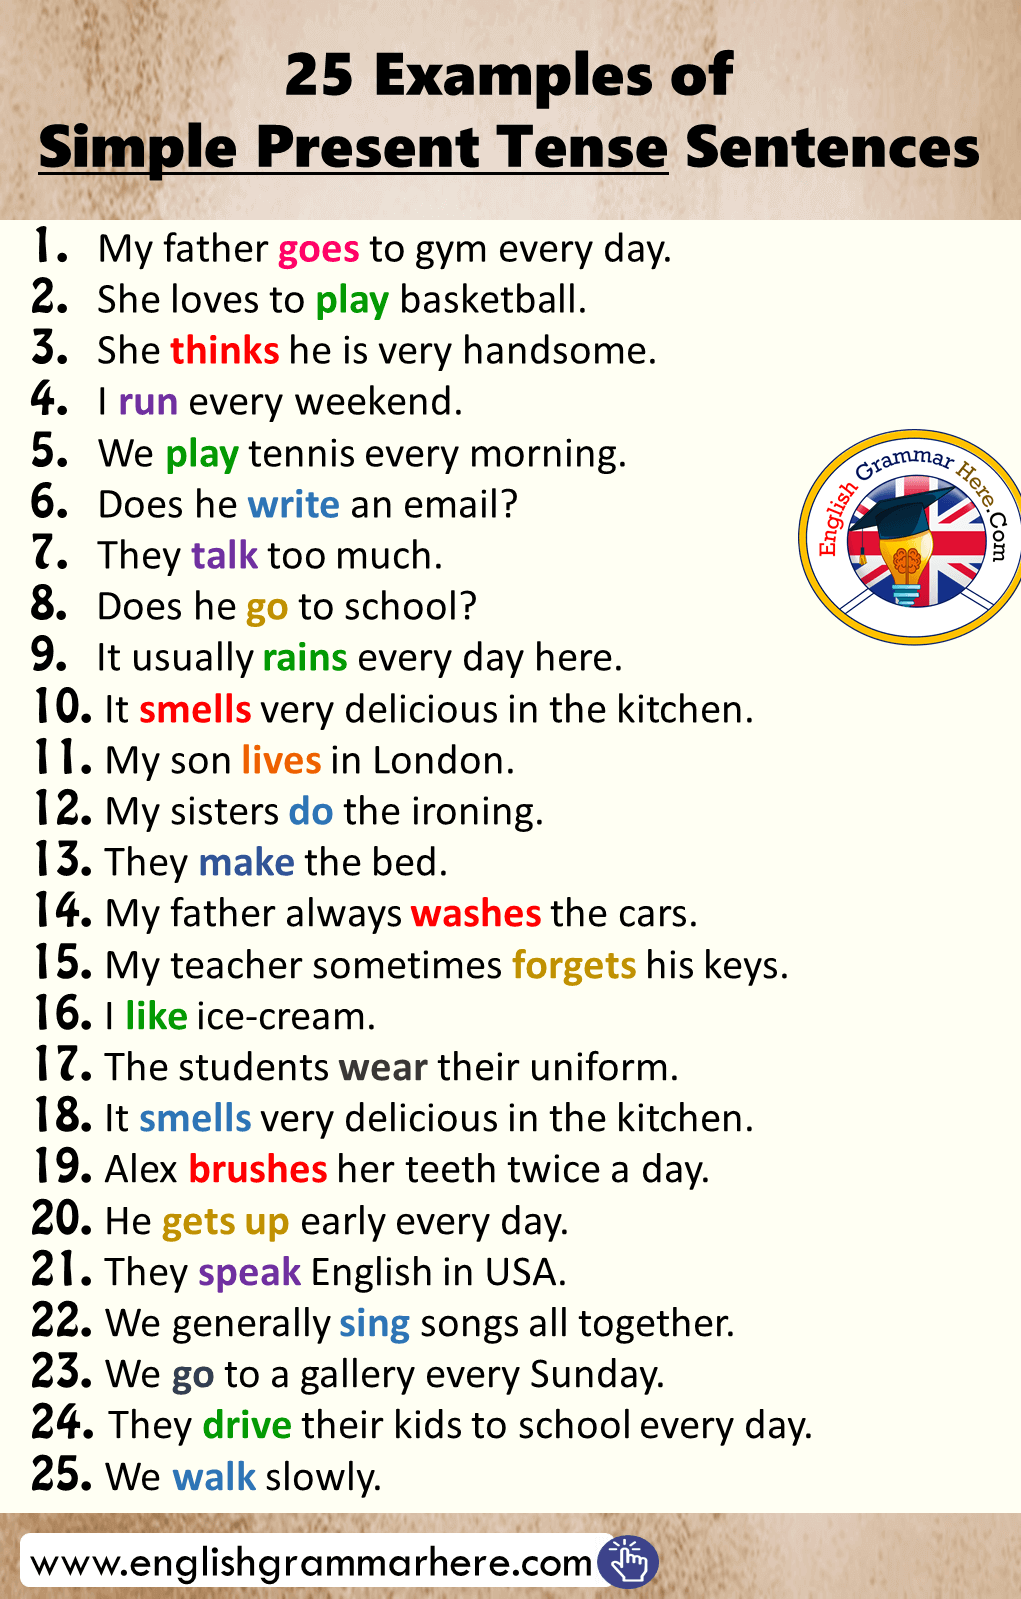 25 Examples of Simple Present Tense Sentences